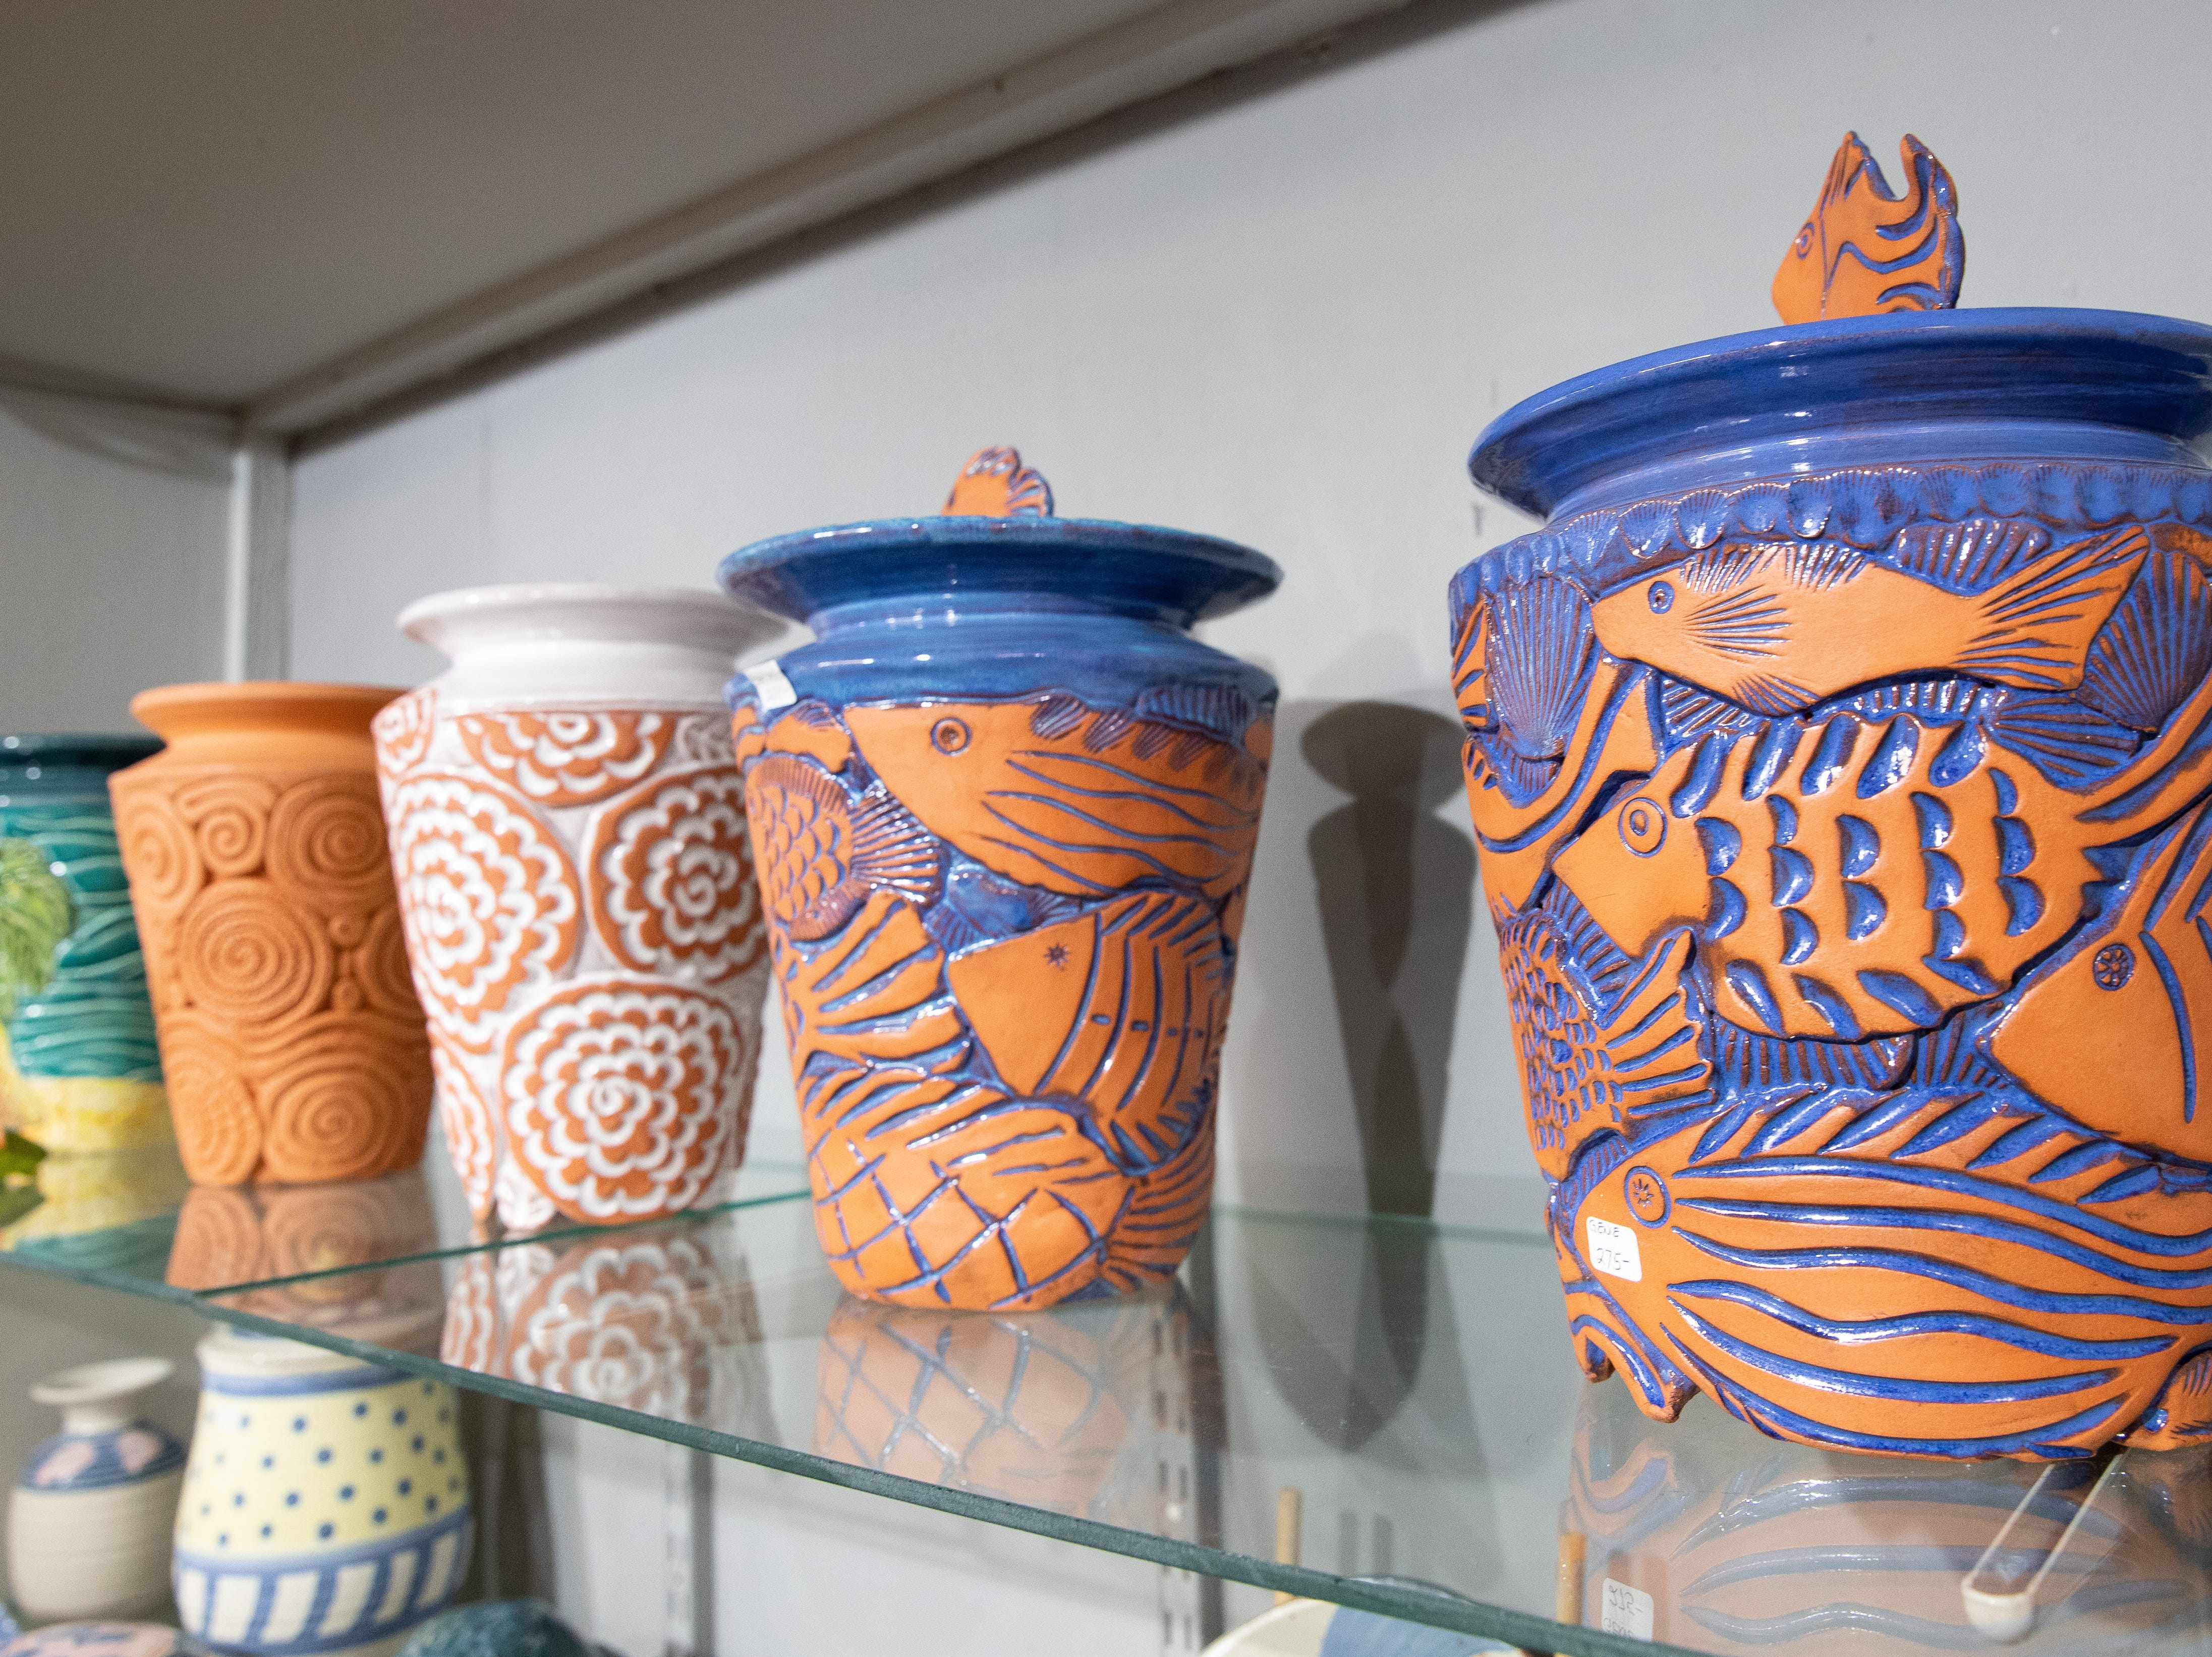 Ceramics and pottery by Genie Mysorski at the Wind Way Gallery at 203 South Austin Street in Rockport.